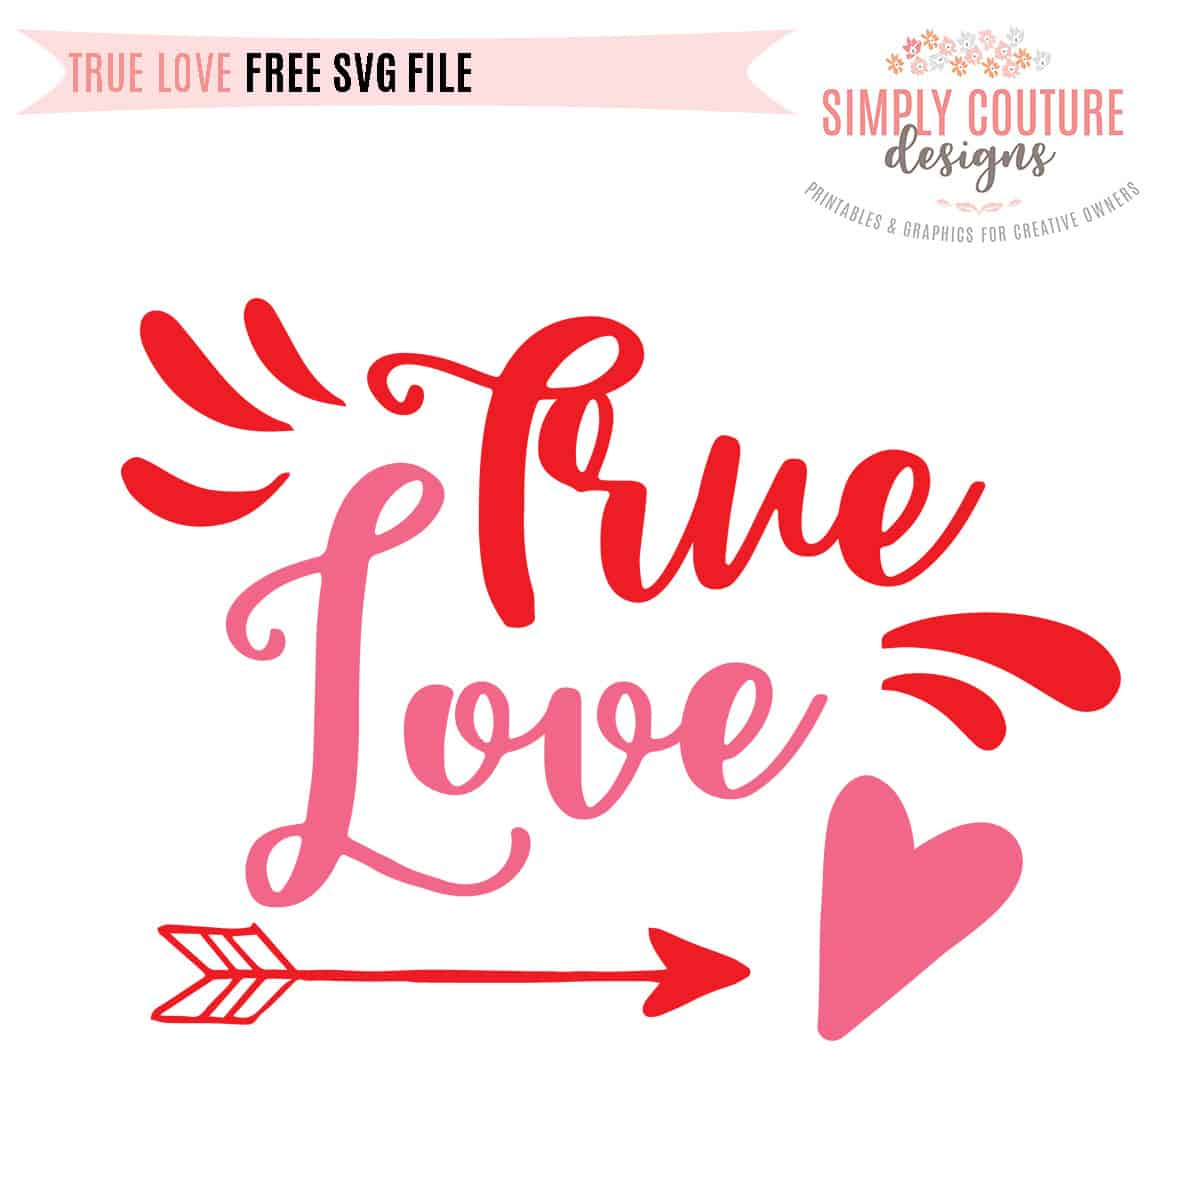 Download True Love | Free SVG Cut File - Simply Couture Designs